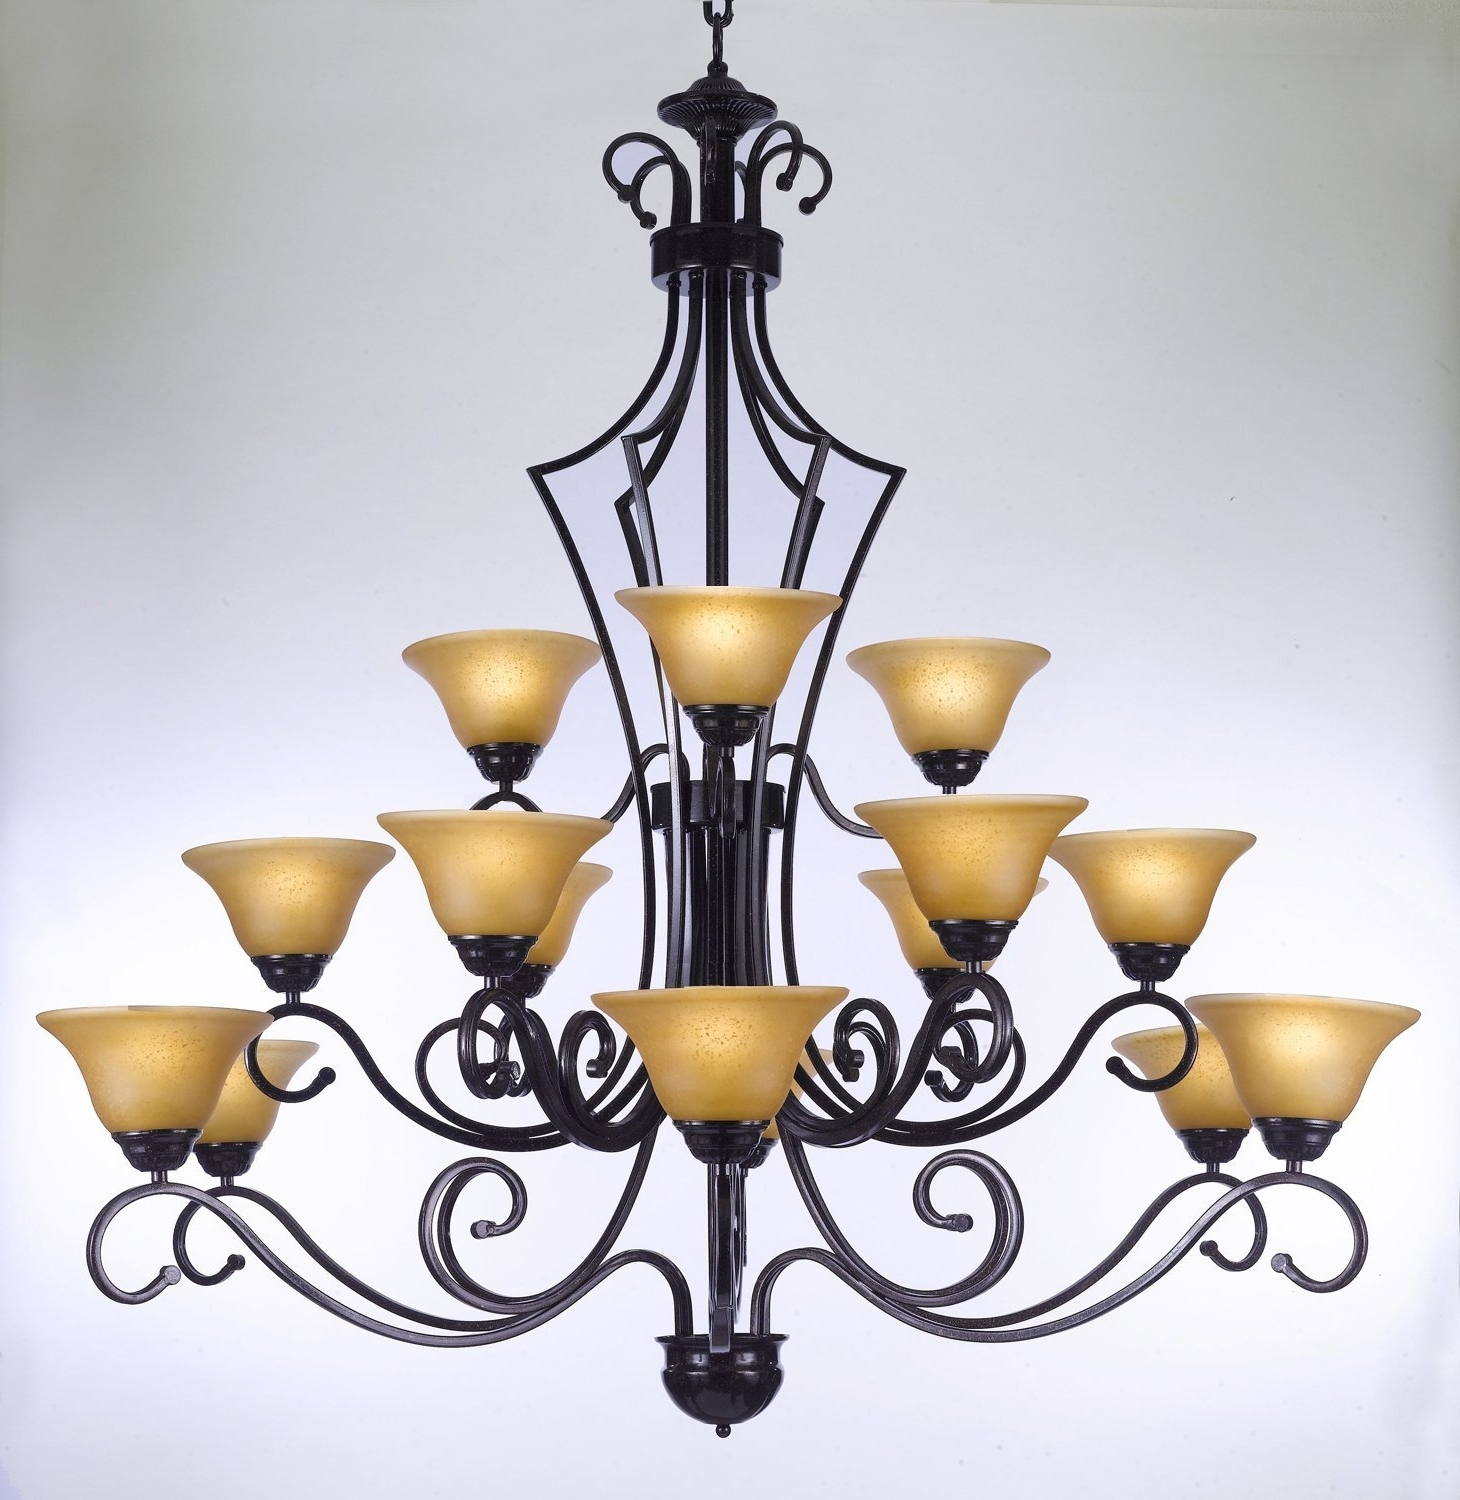 "Newest Wrought Iron Chandeliers Intended For Large Foyer Or Entryway Wrought Iron Chandelier H51"" X W (View 5 of 15)"